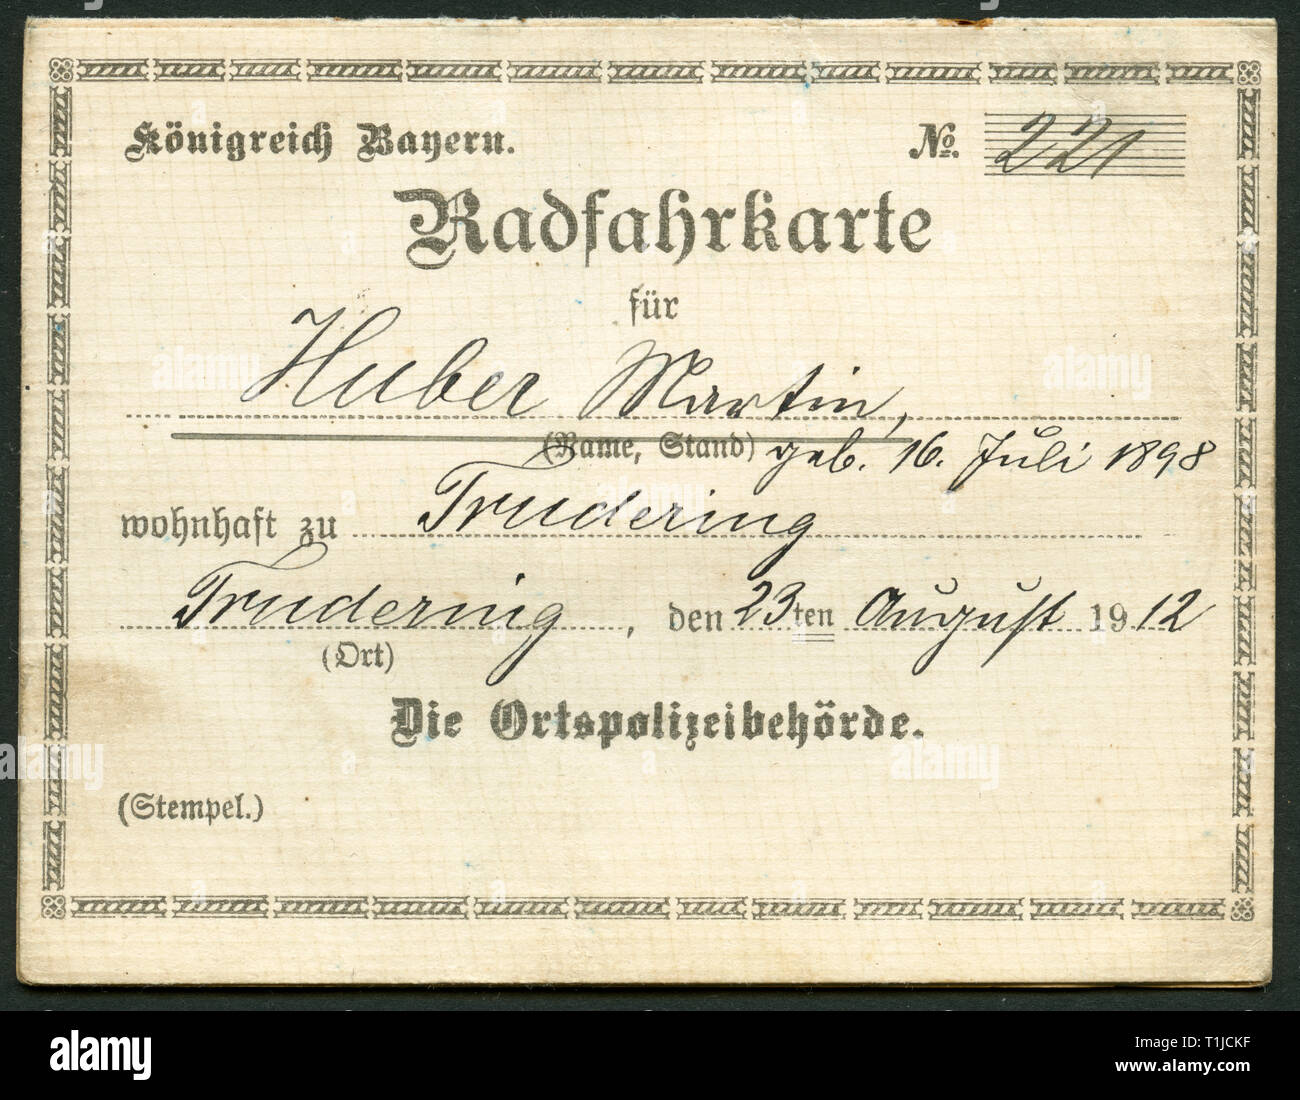 documents, Germany, kingdom of Bavaria, Trudering, bicycle identification card for Martin Huber, issued  23.08.1912 together with the orders for cycling from the 29.09.1907., Additional-Rights-Clearance-Info-Not-Available Stock Photo